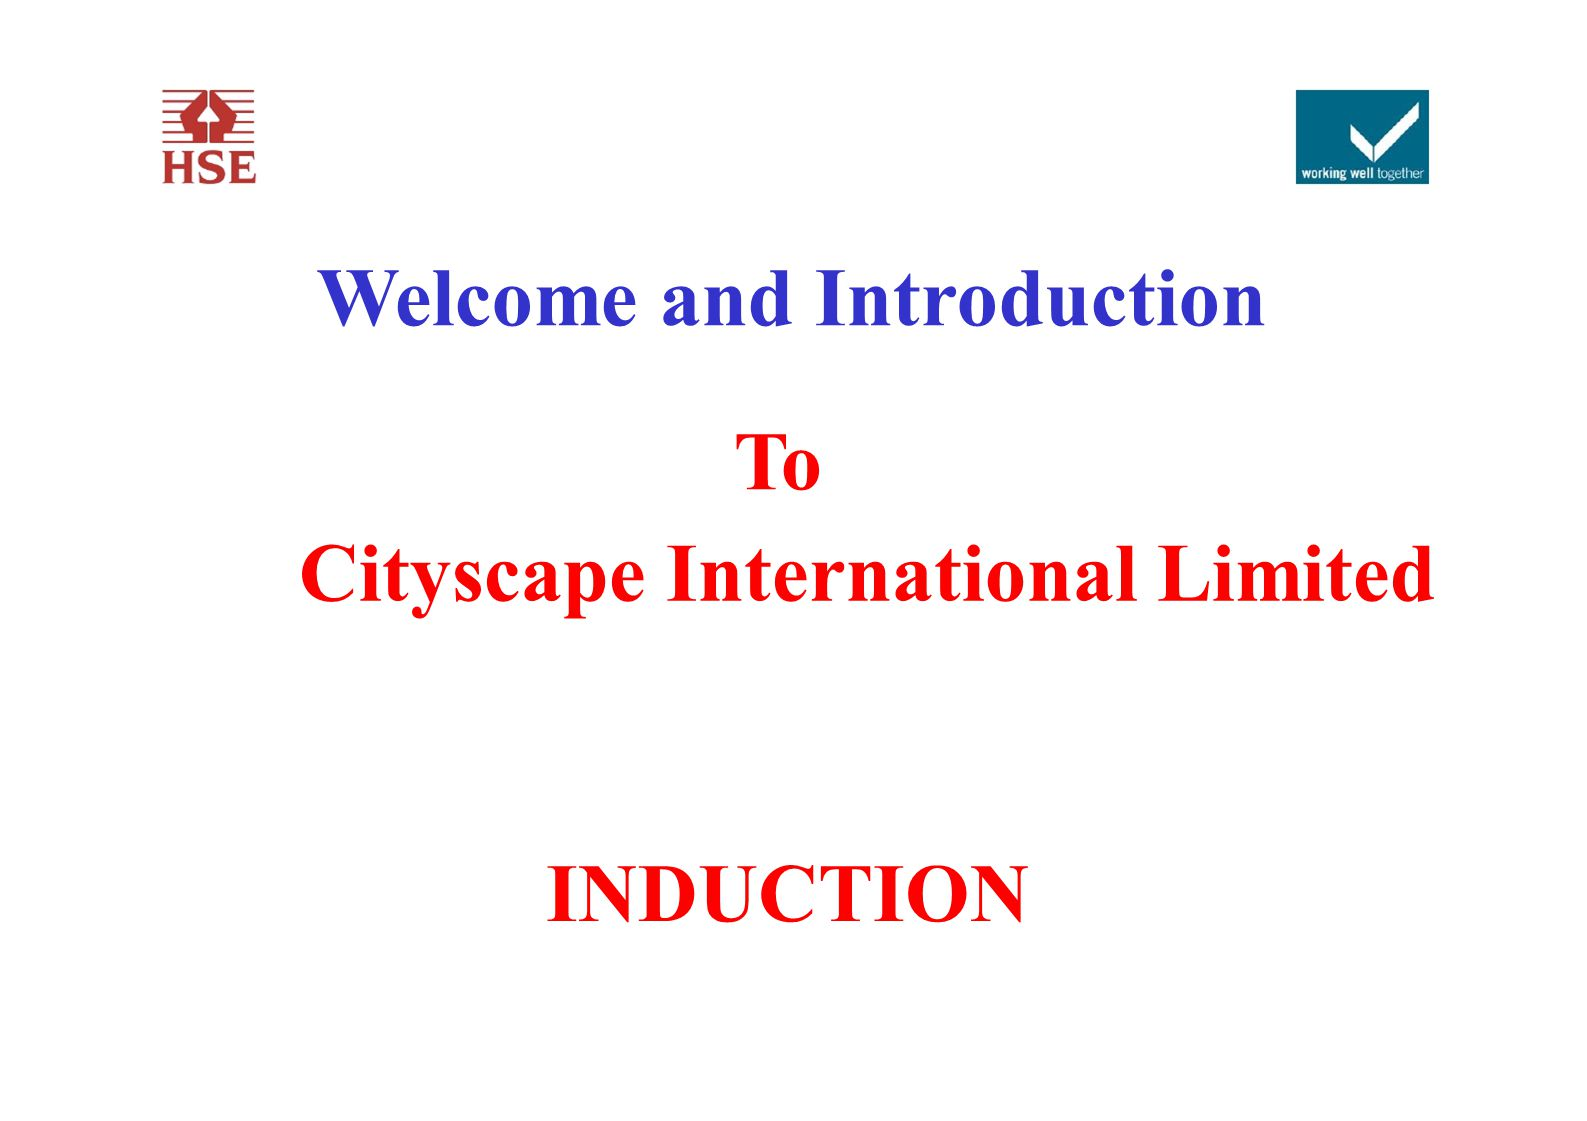 Welcome and Introduction To Cityscape International Limited INDUCTION